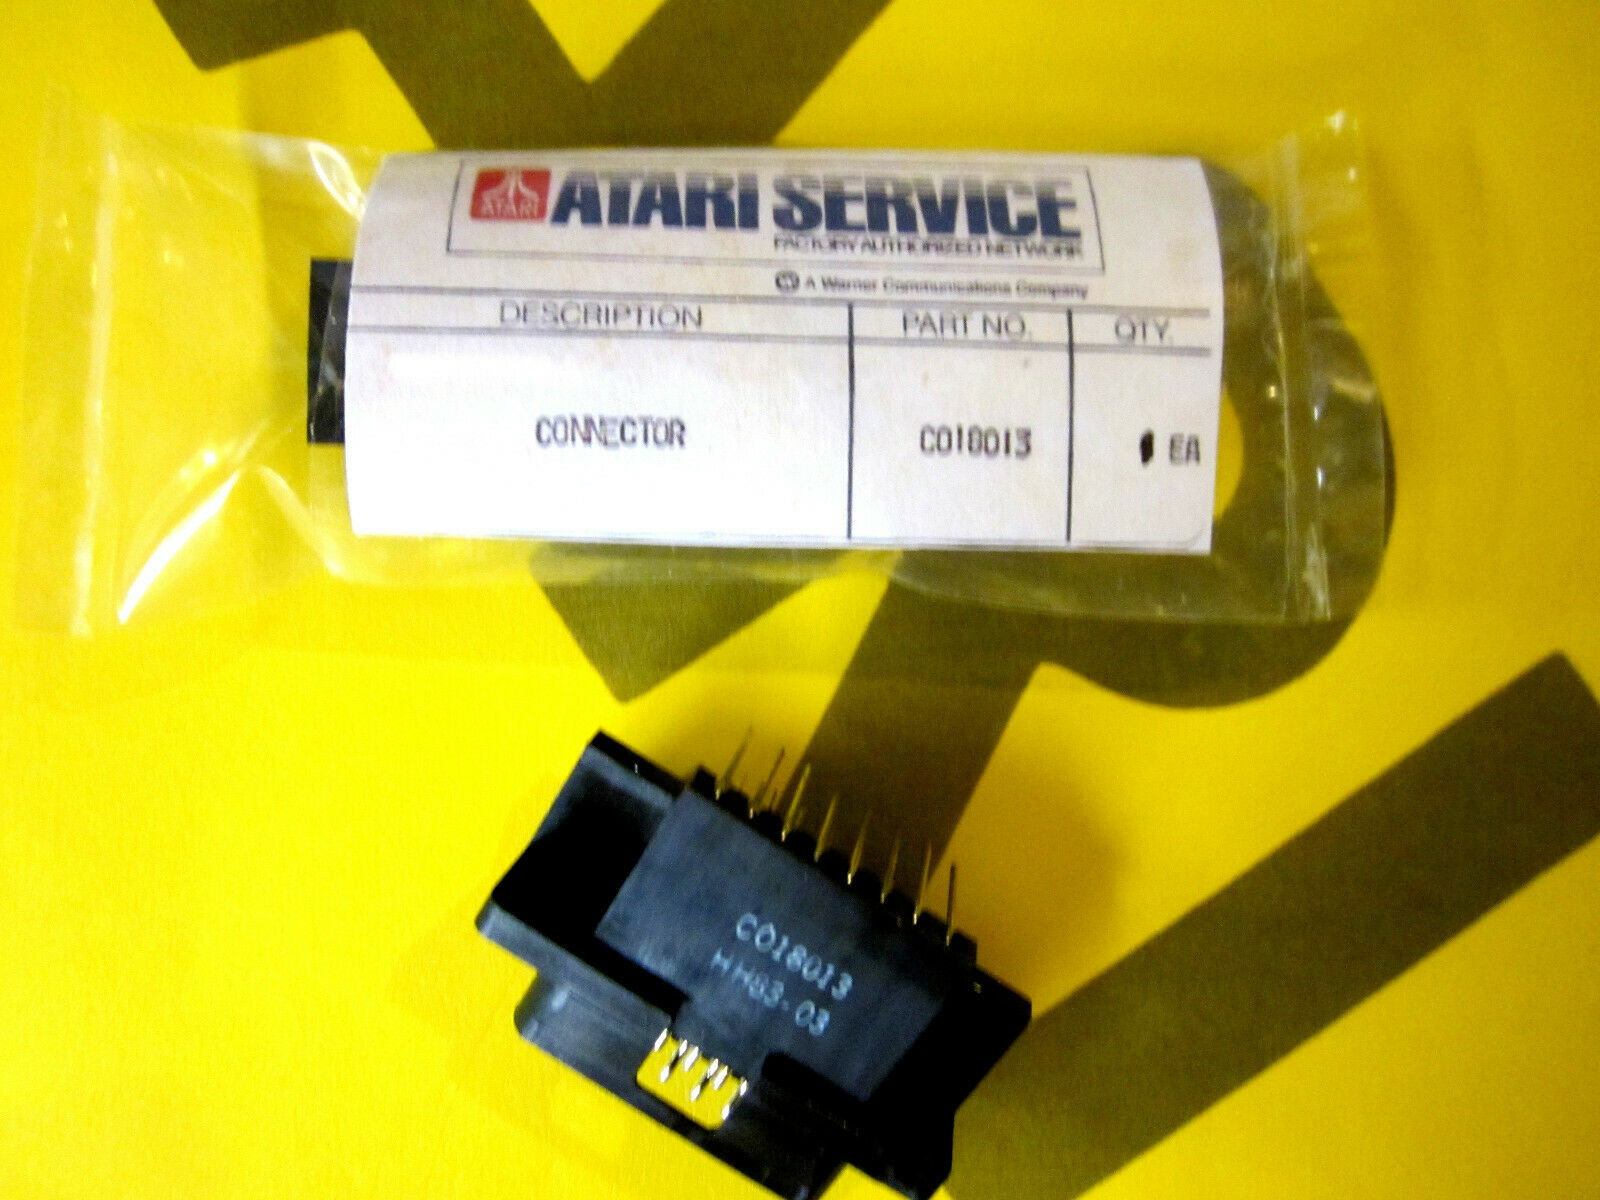 Primary image for Atari 5200 D Port 15 pin Connector Genuine Atari Service Part # C018013 **New**